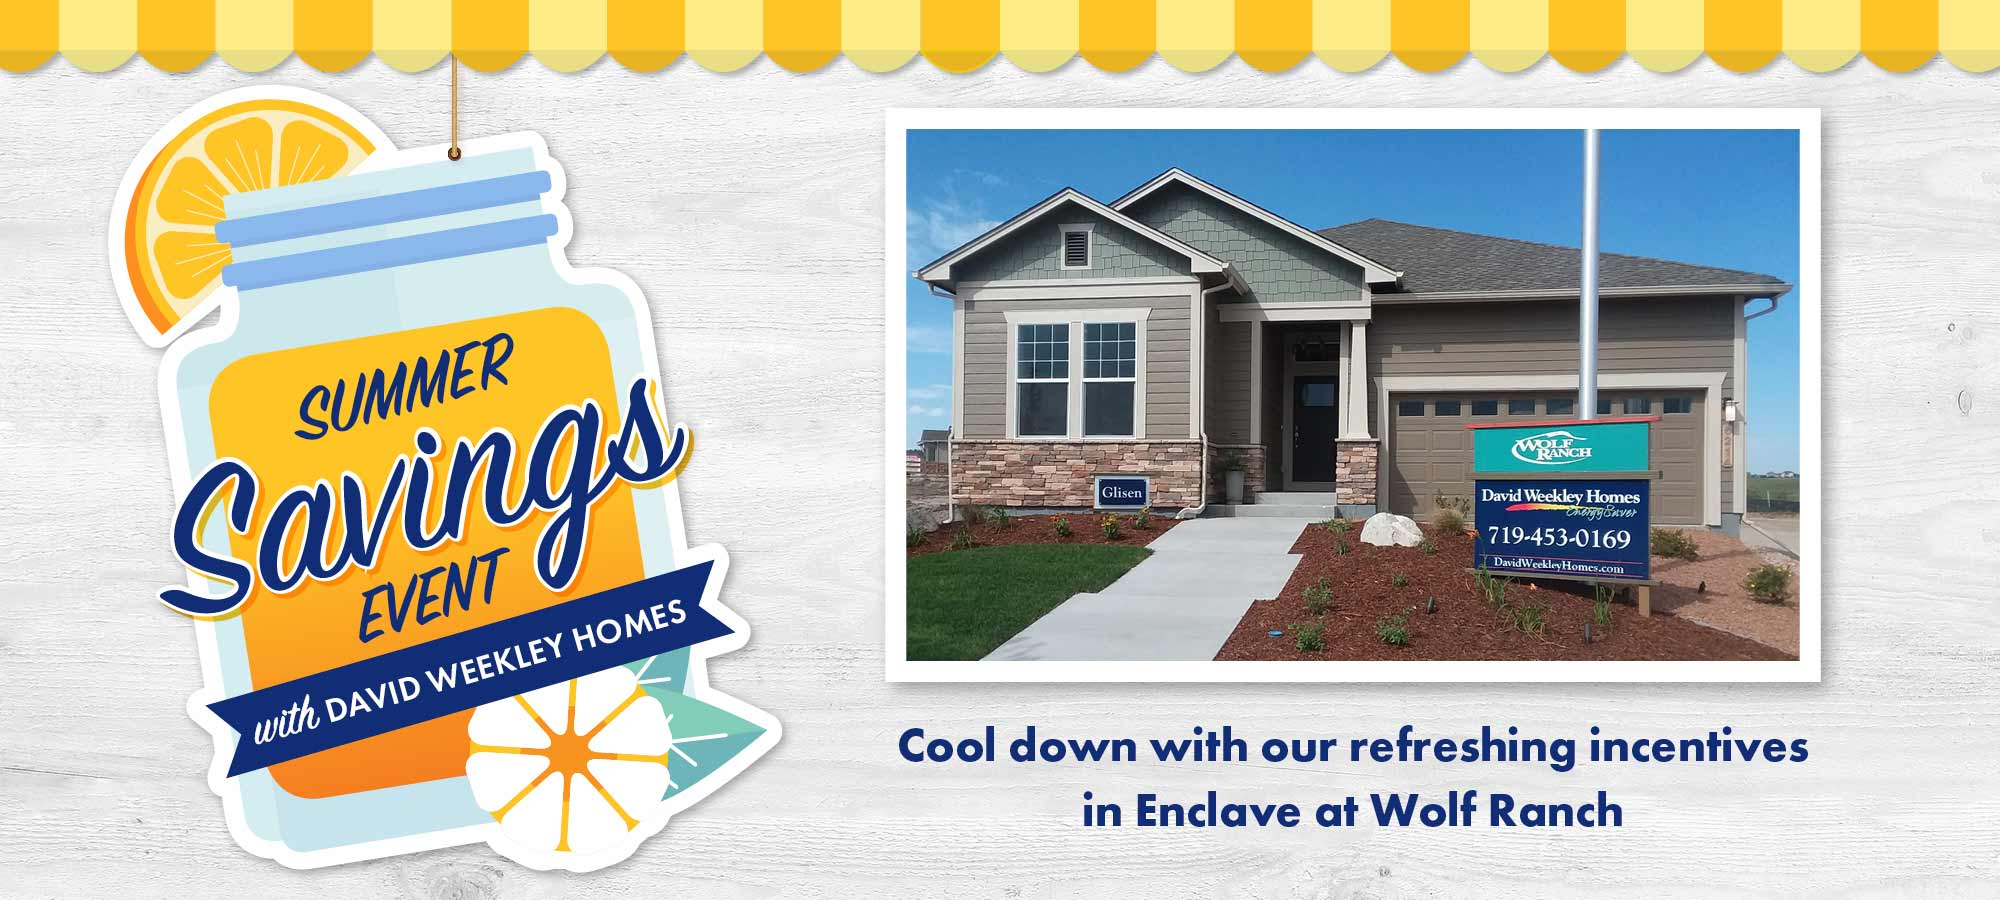 Summer Savings Event in Enclave at Wolf Ranch